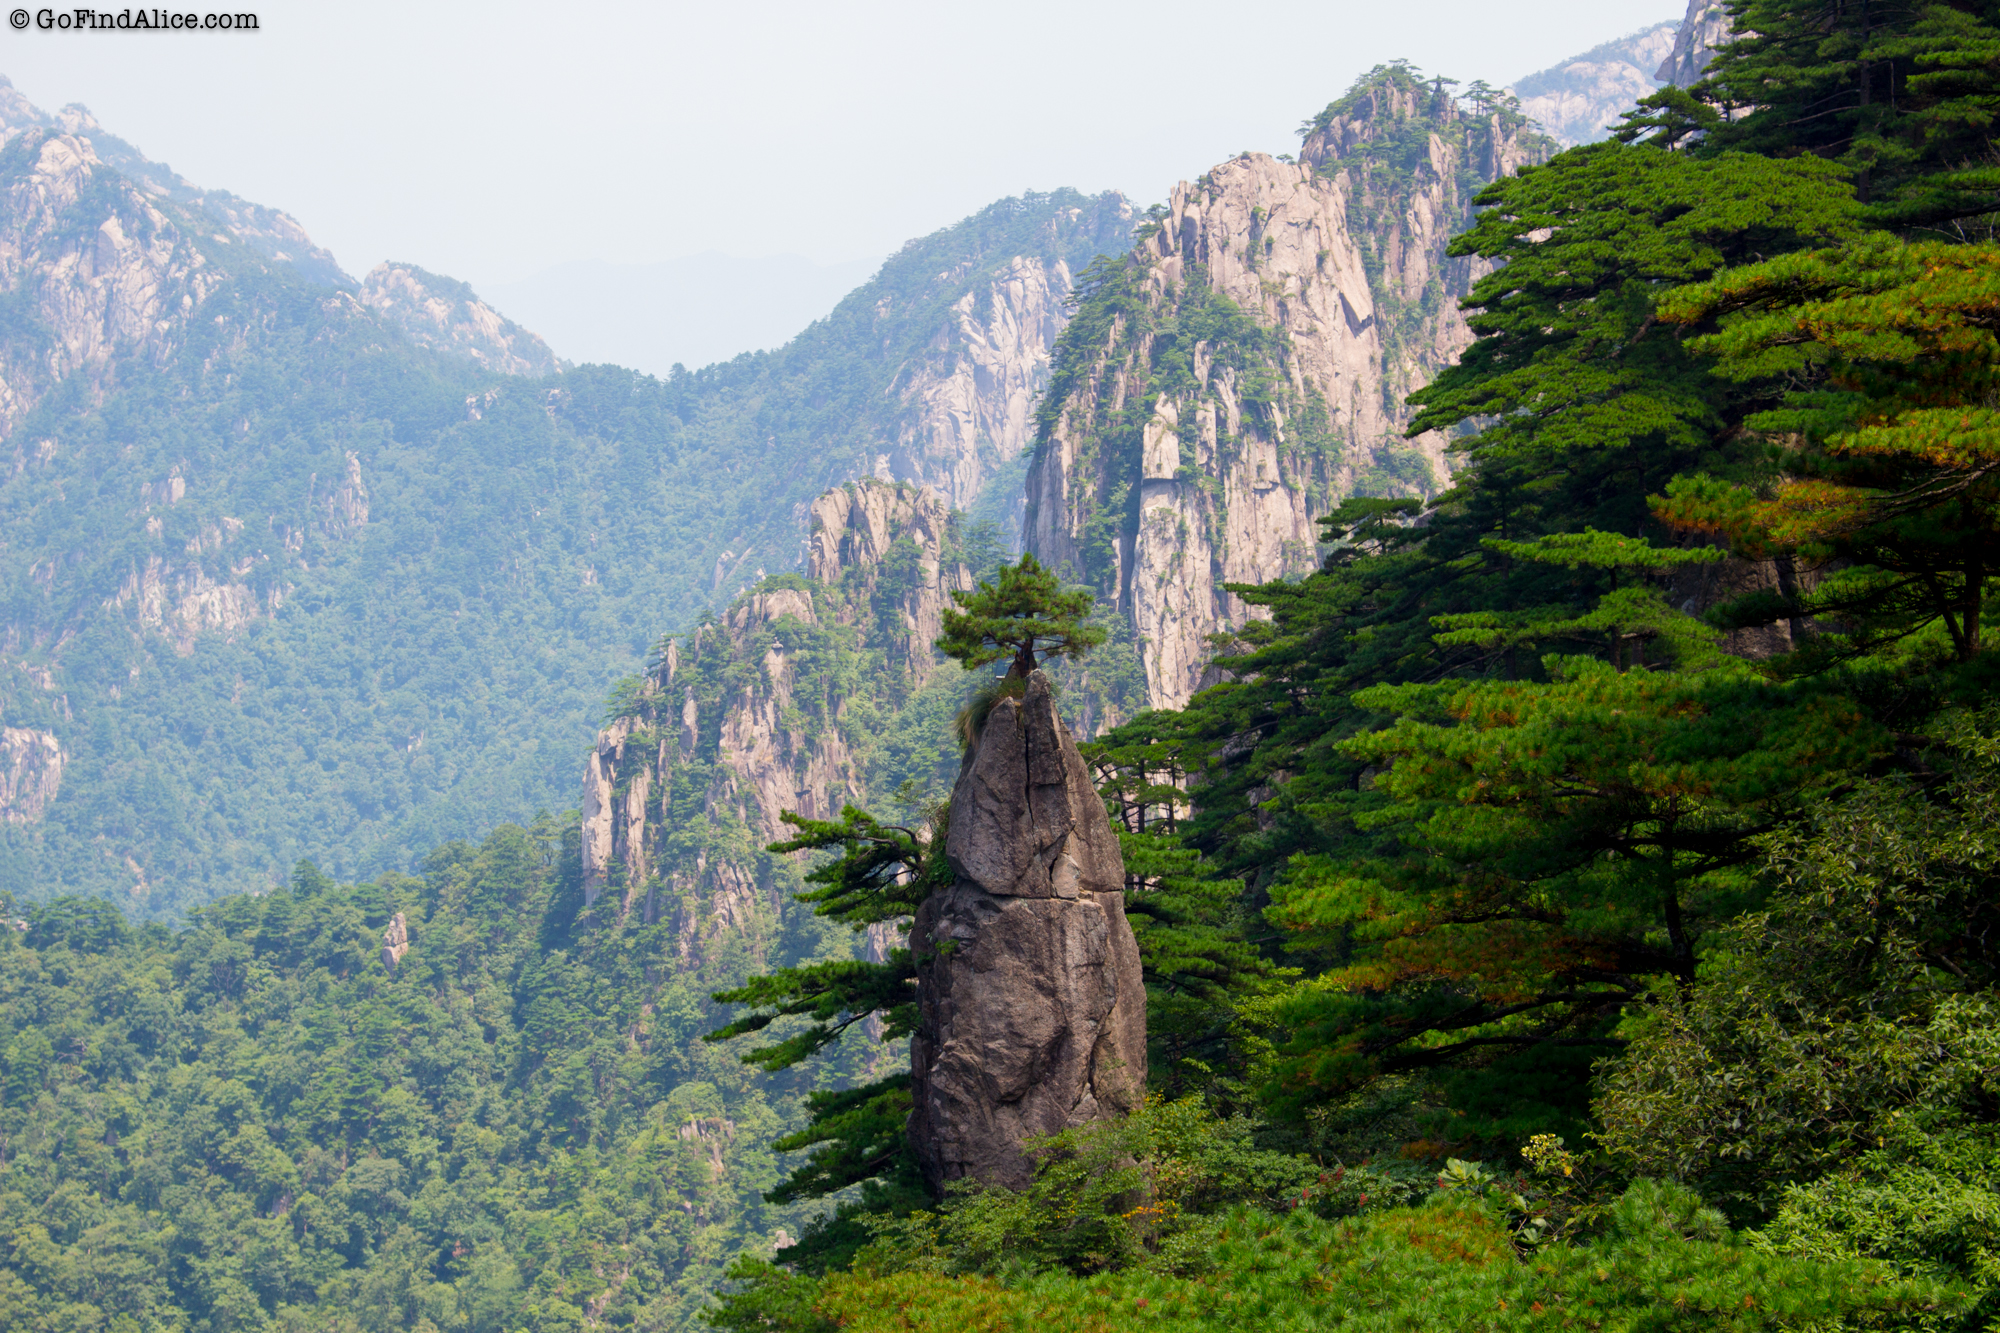 The famous Flower Blooming on a Brush Tip (梦笔生花). It is a granite formation topped by a pine tree.